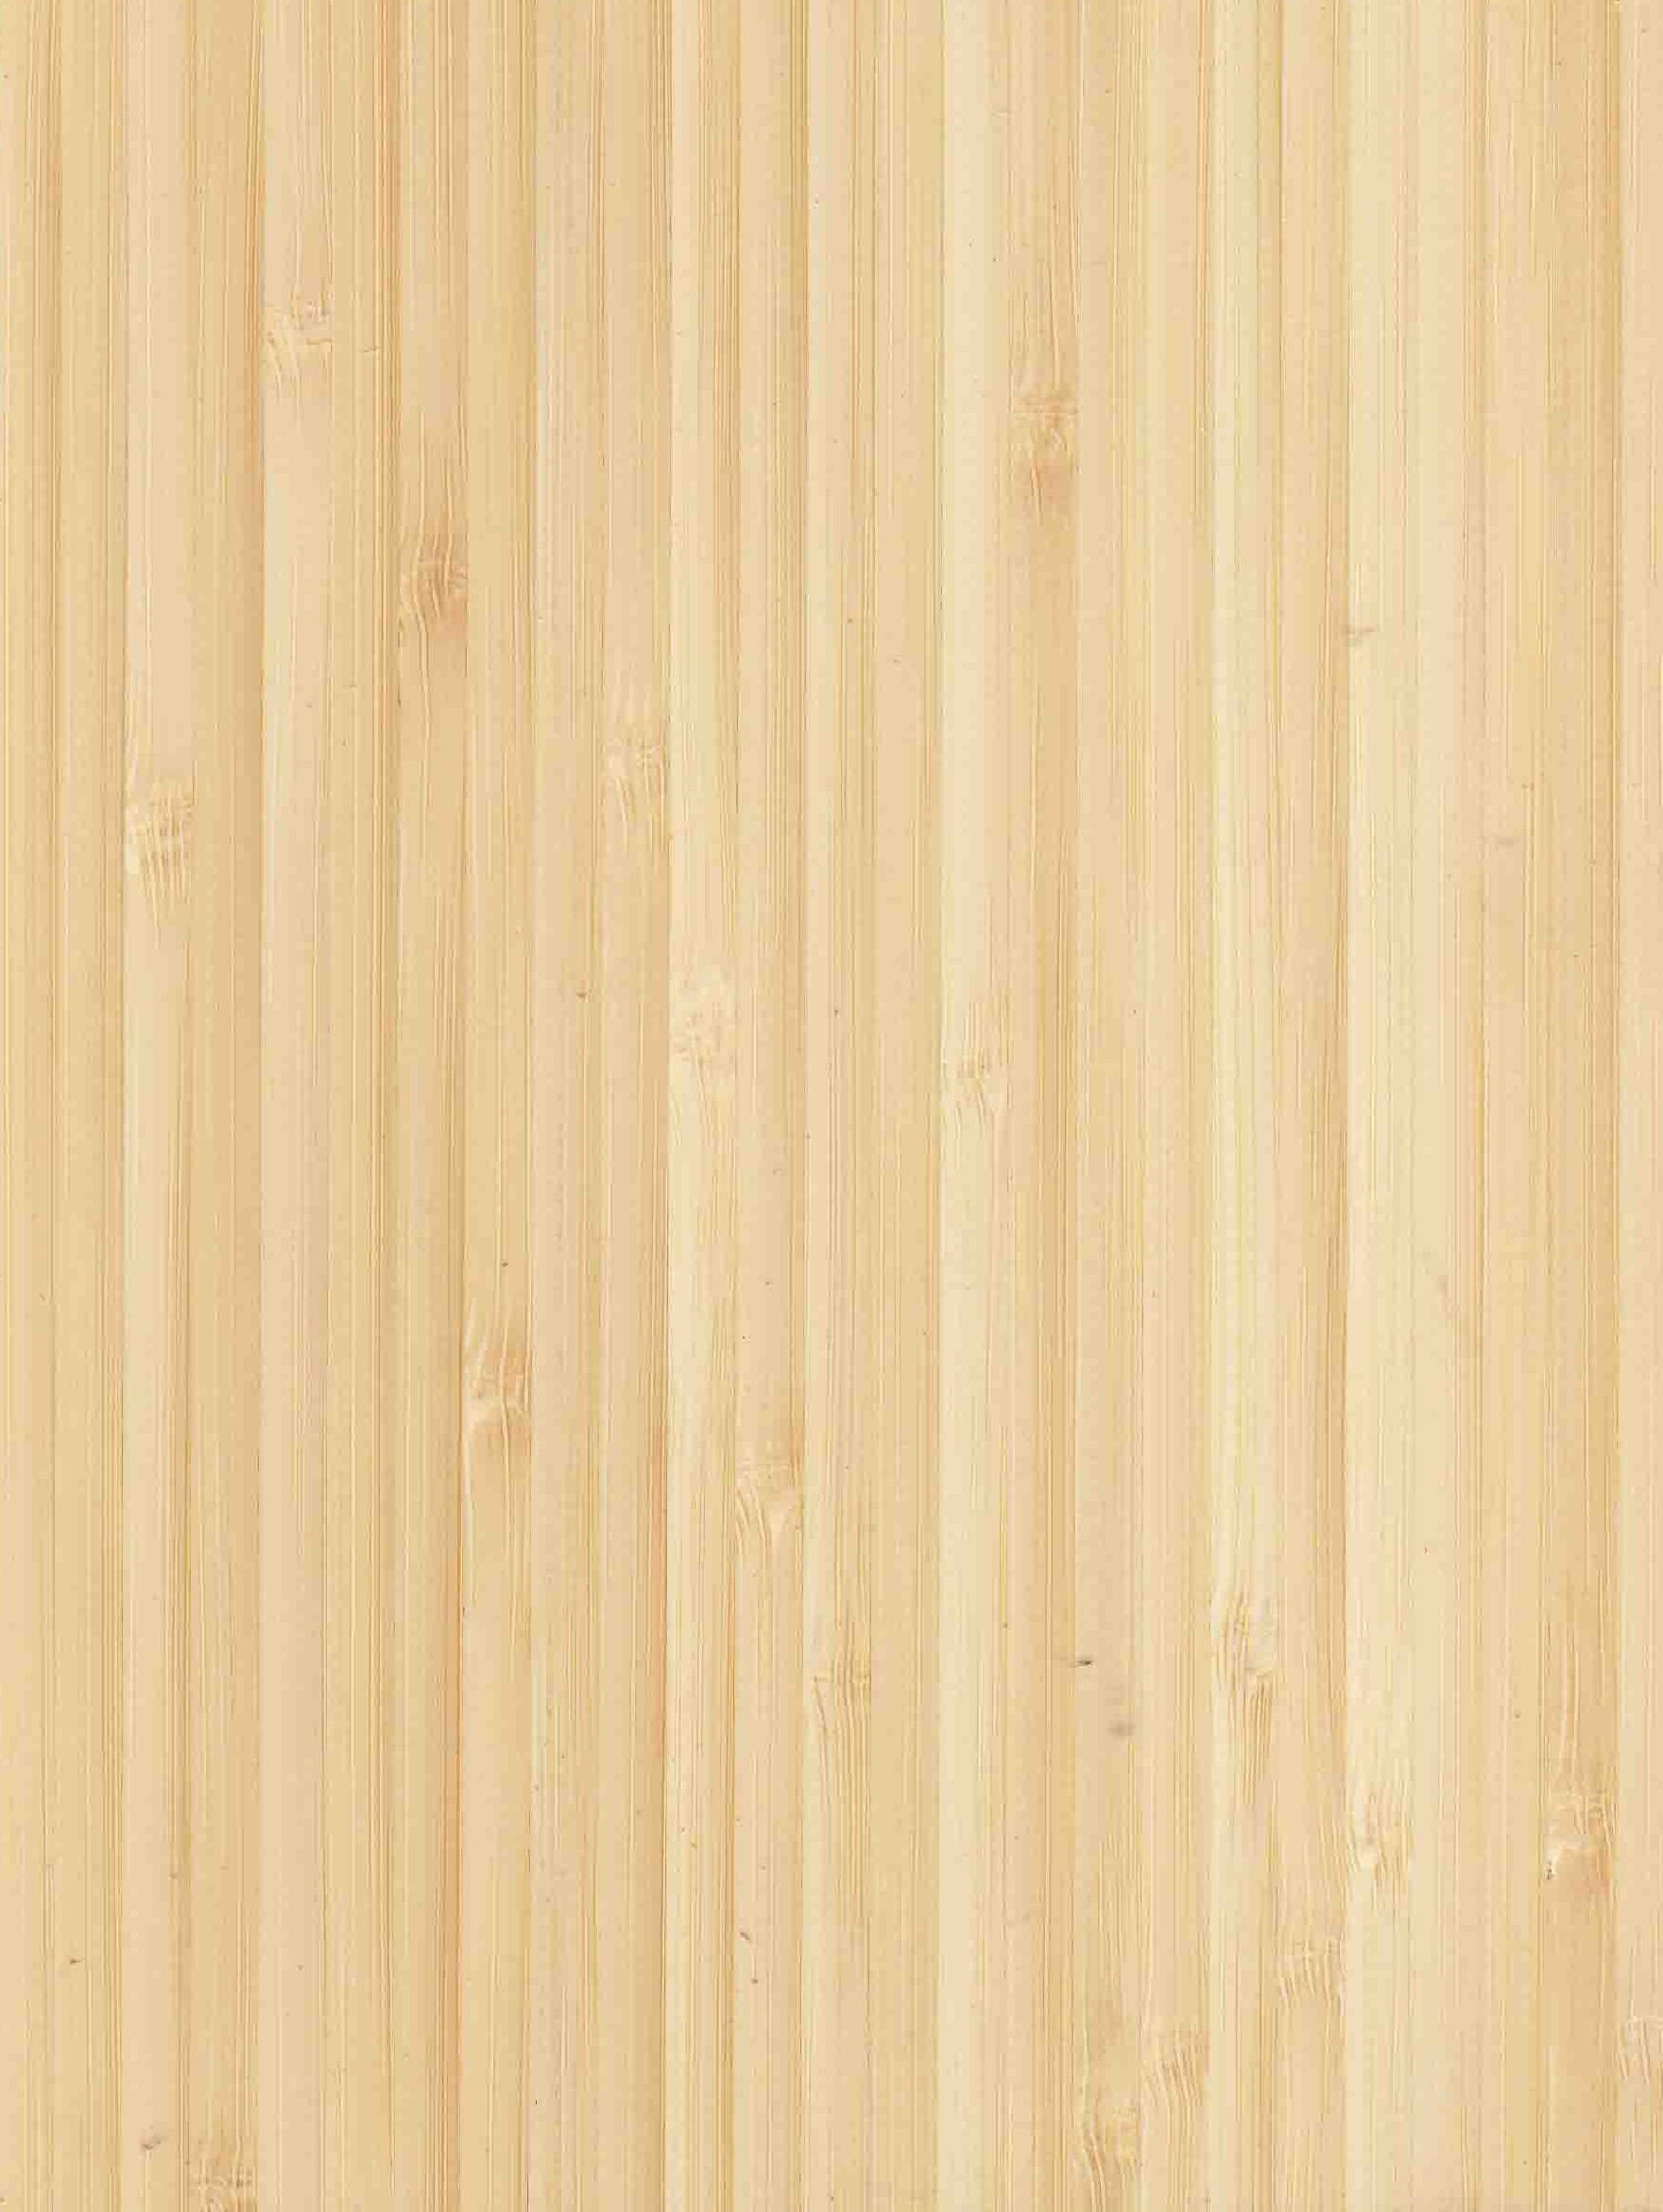 Bamboo Vertical Natural Km Material Palette Bamboo